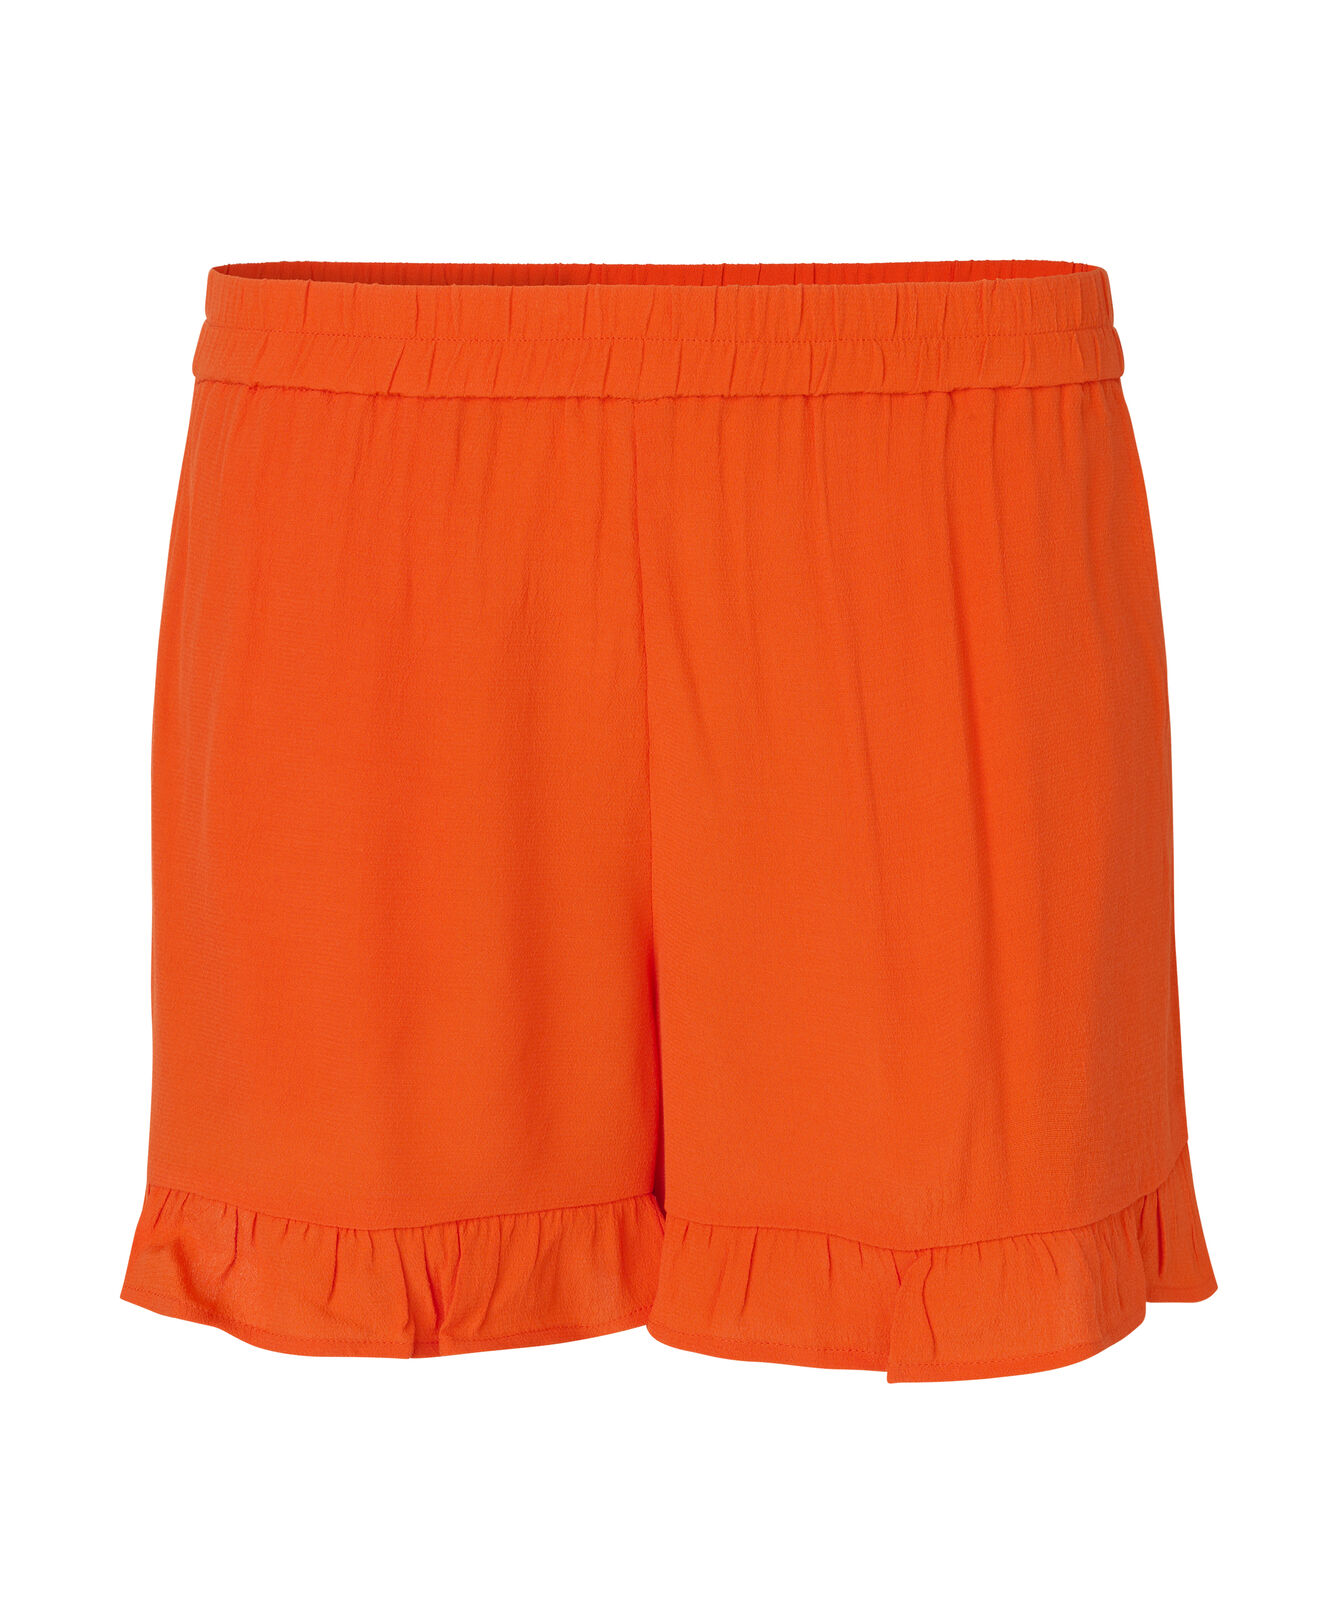 ENALOHA SHORTS 6257, MANDARIN RED